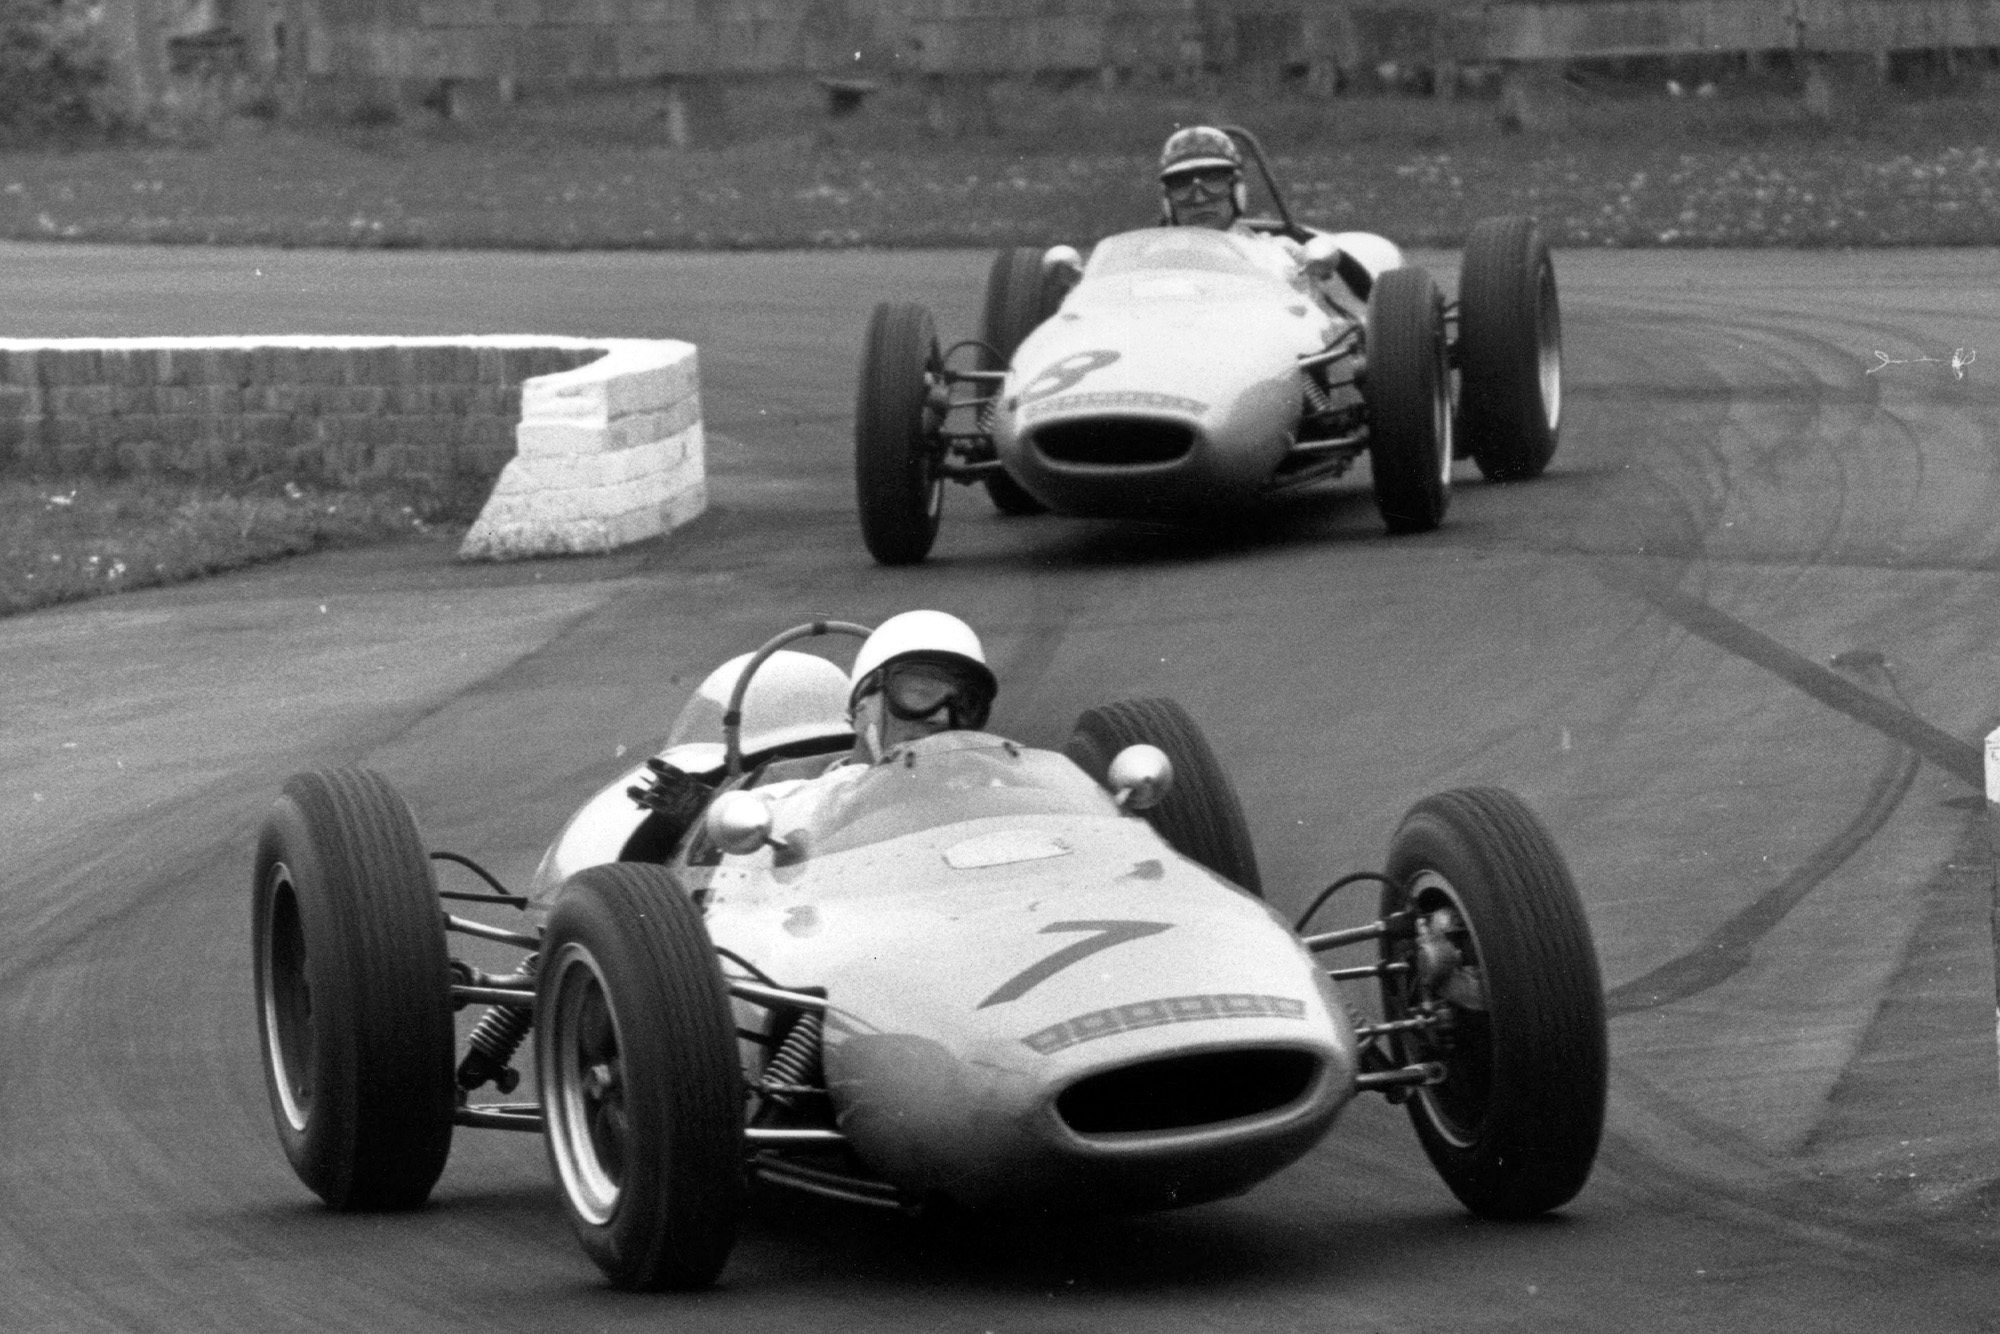 Stirling Moss at Goodwood in 1962